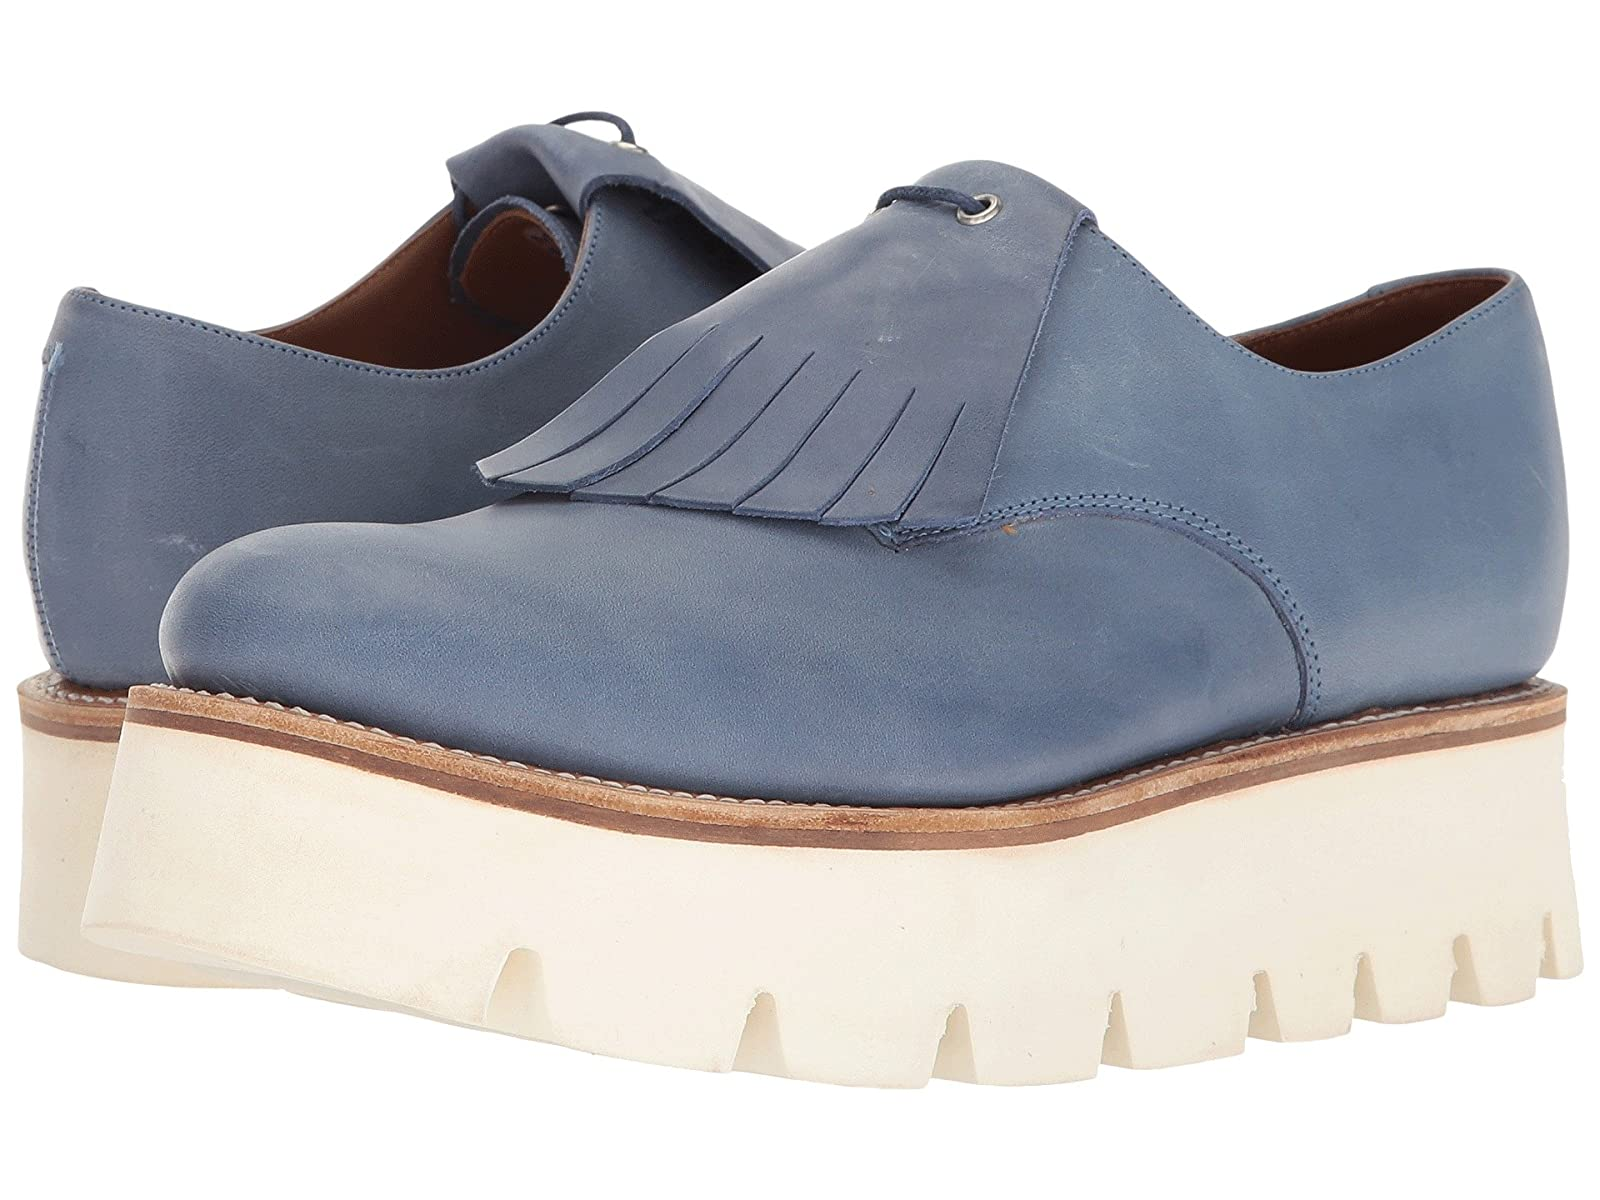 Grenson EllenCheap and distinctive eye-catching shoes